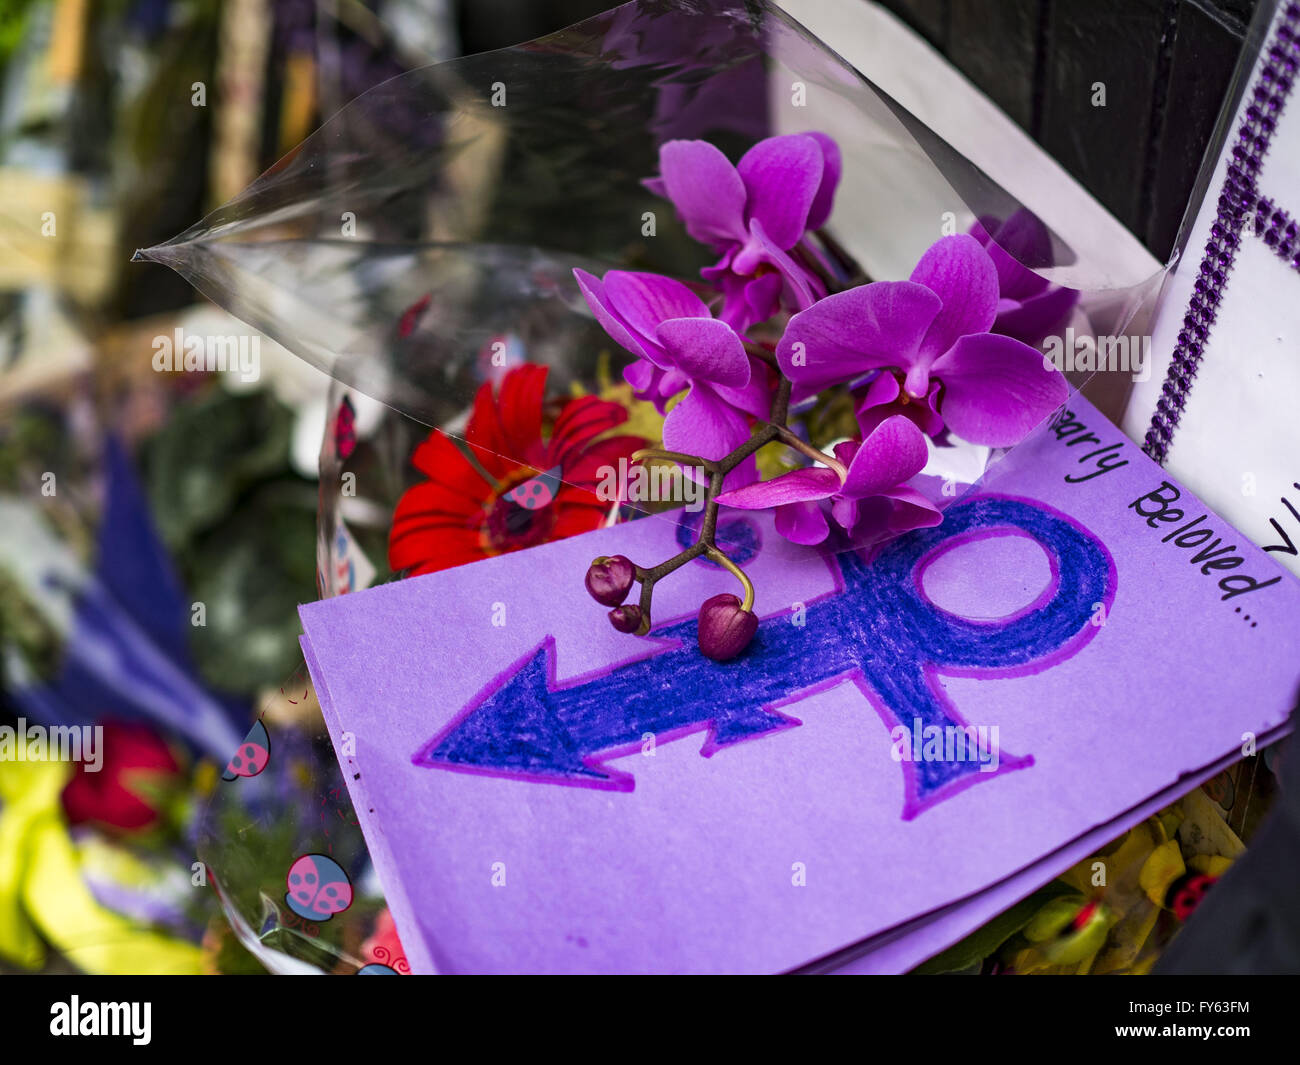 Minneapolis, MN, USA. 22nd Apr, 2016. A card left at 1st Ave for Prince. Thousands of people came to 1st Ave in - Stock Image